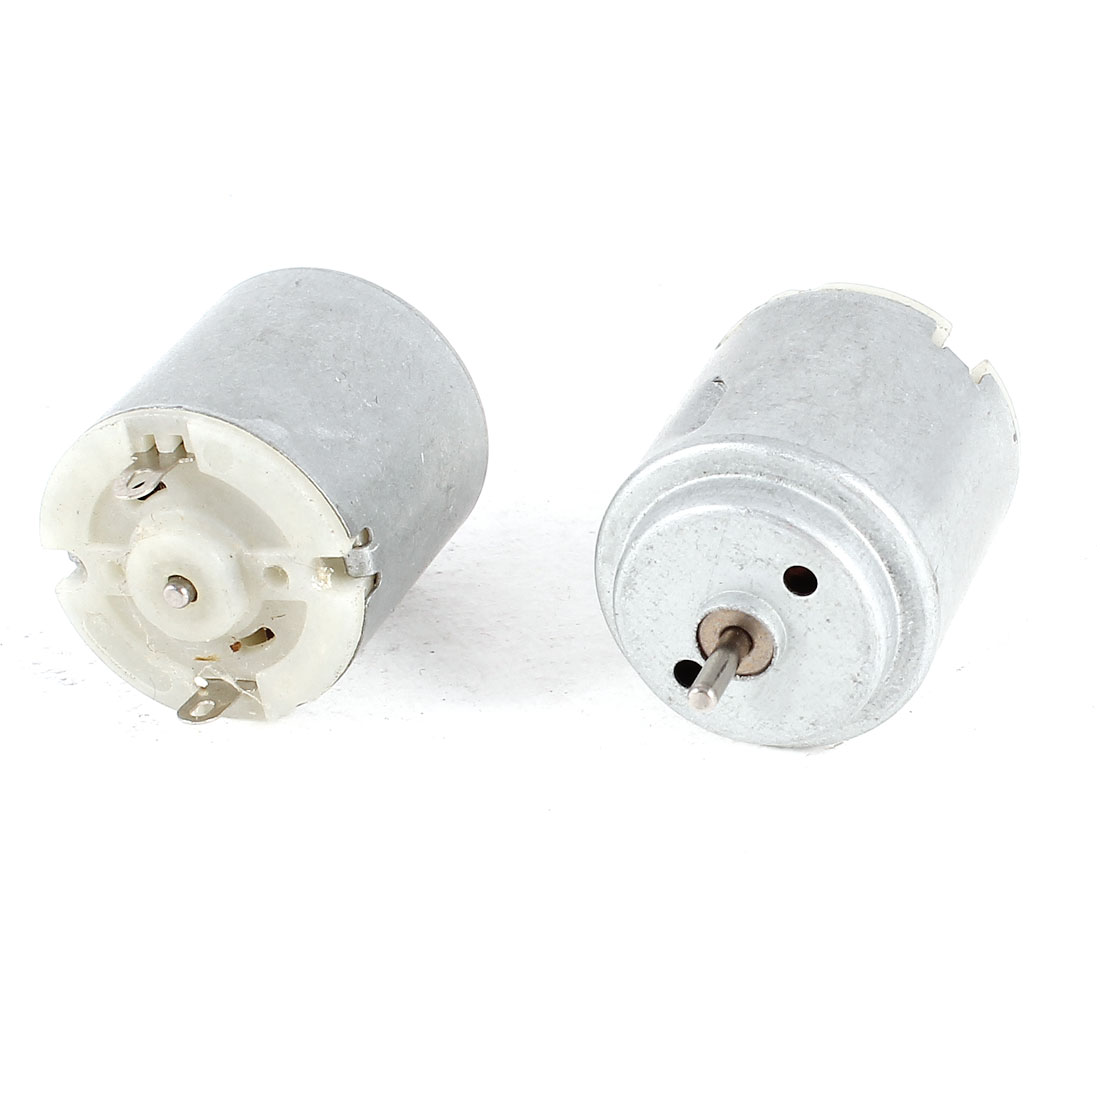 2-Pcs-R260-6500RPM-6V-DC-Electric-Mini-Motor-25mm-x-25mm-for-Toys-DIY